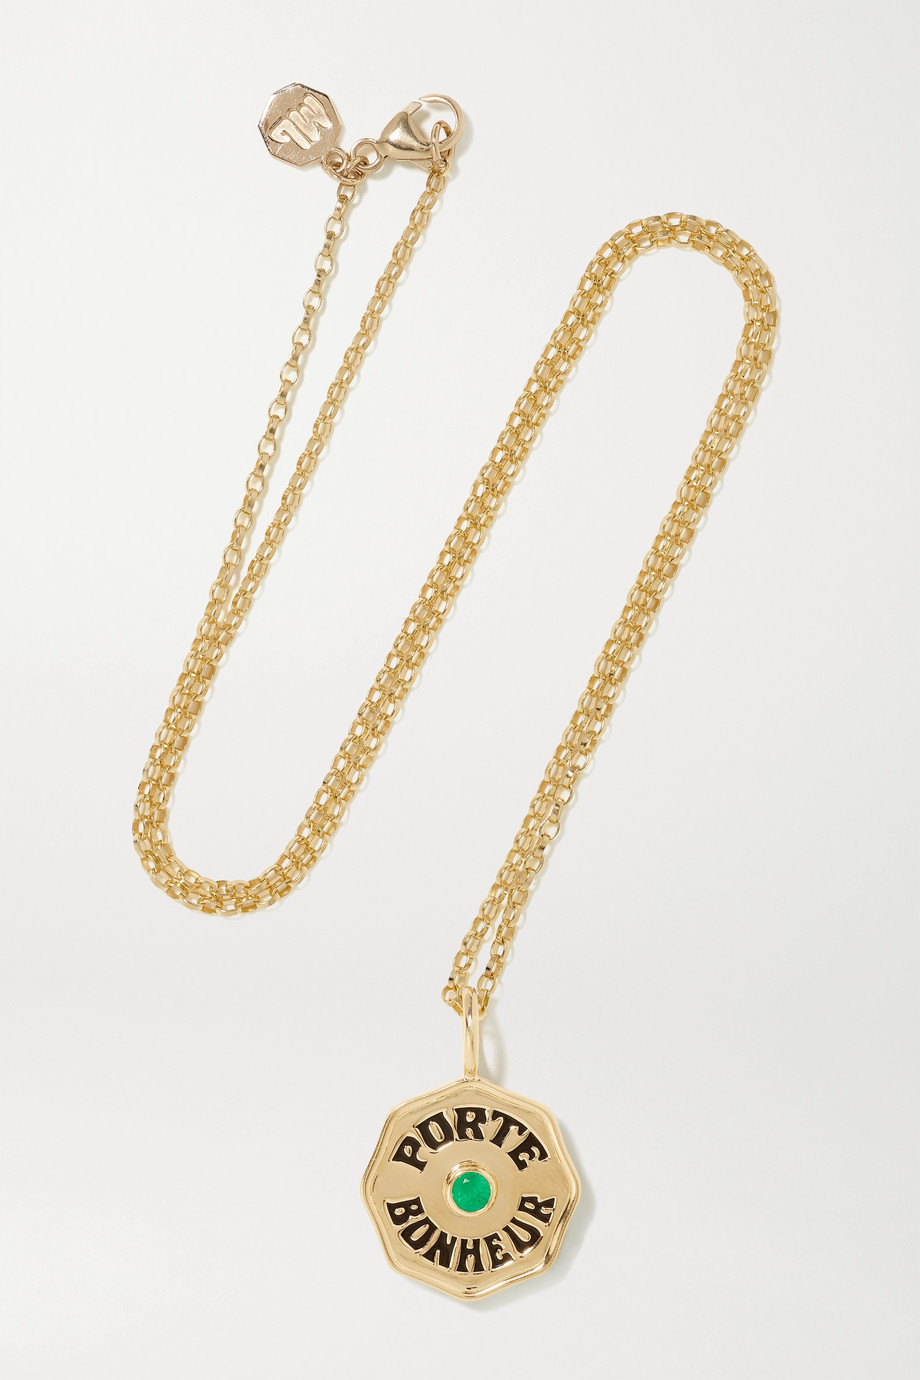 Marlo Laz Mini Porte Bonheur Coin 14-karat gold, enamel and emerald necklace